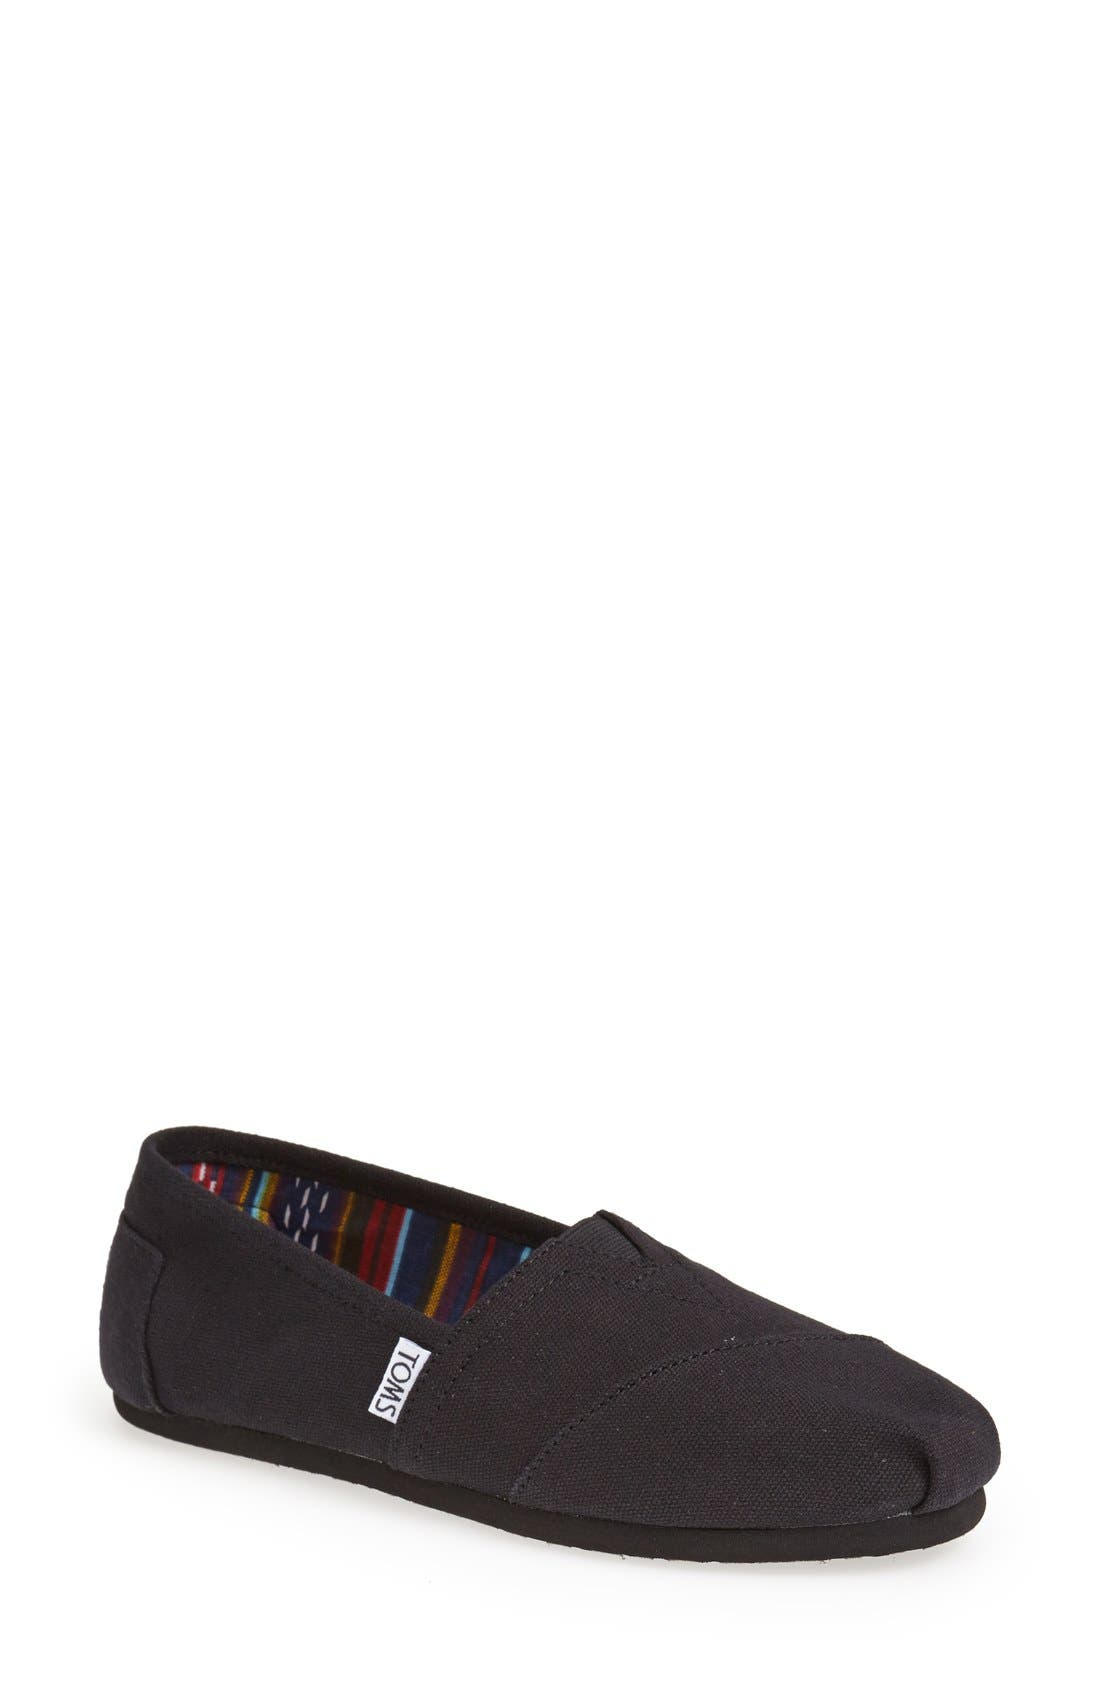 TOMS Classic - Galapagos Slip-On (Women)